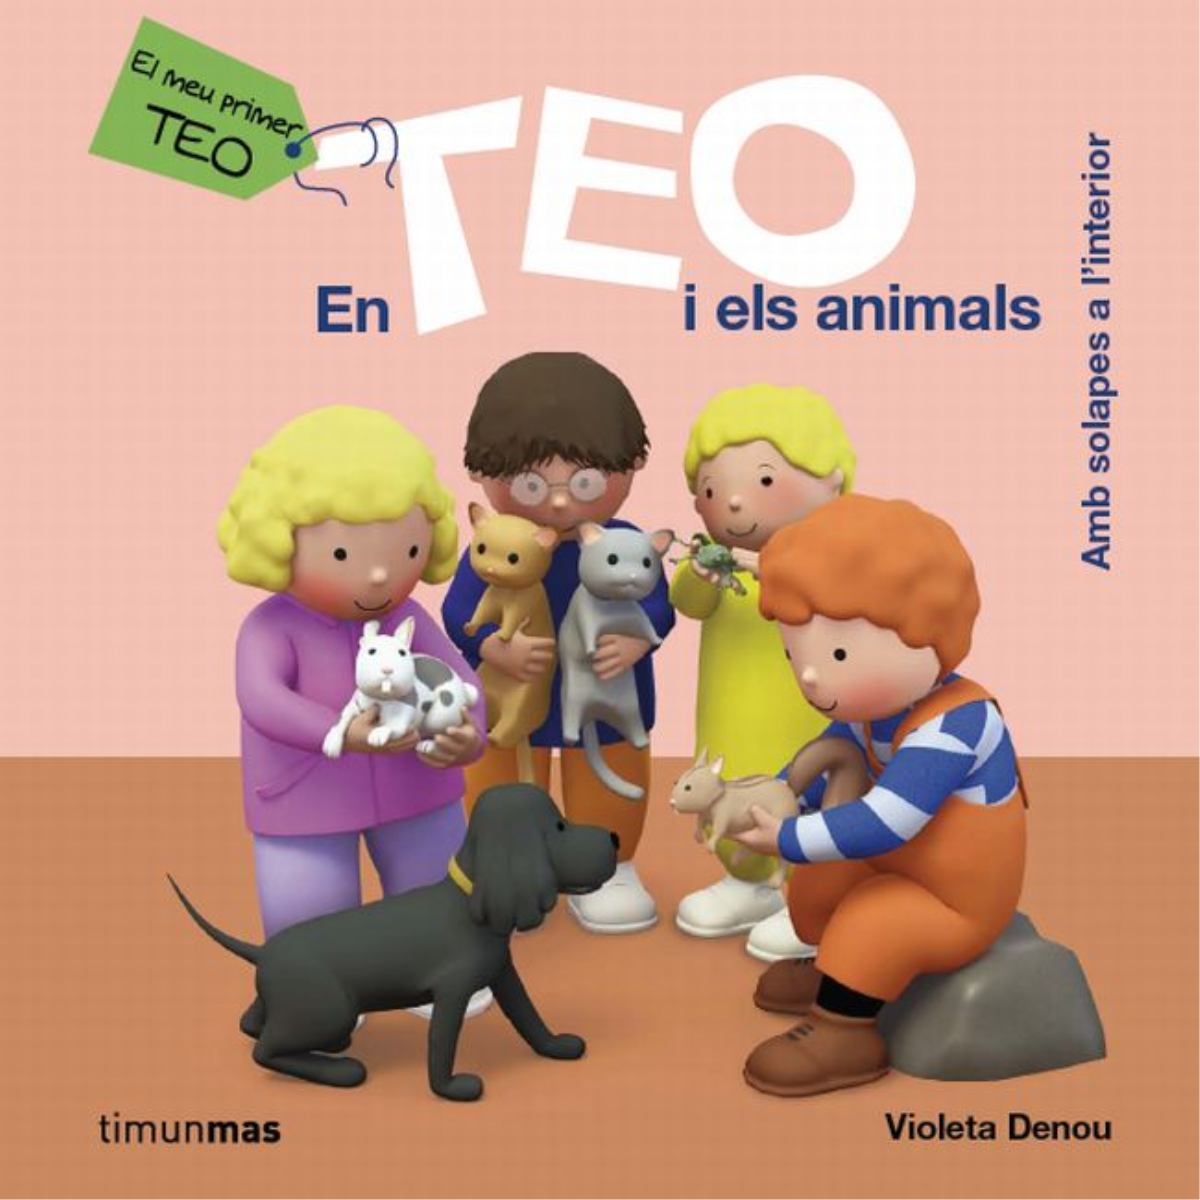 En Teo i els animals (ebook interactiu)